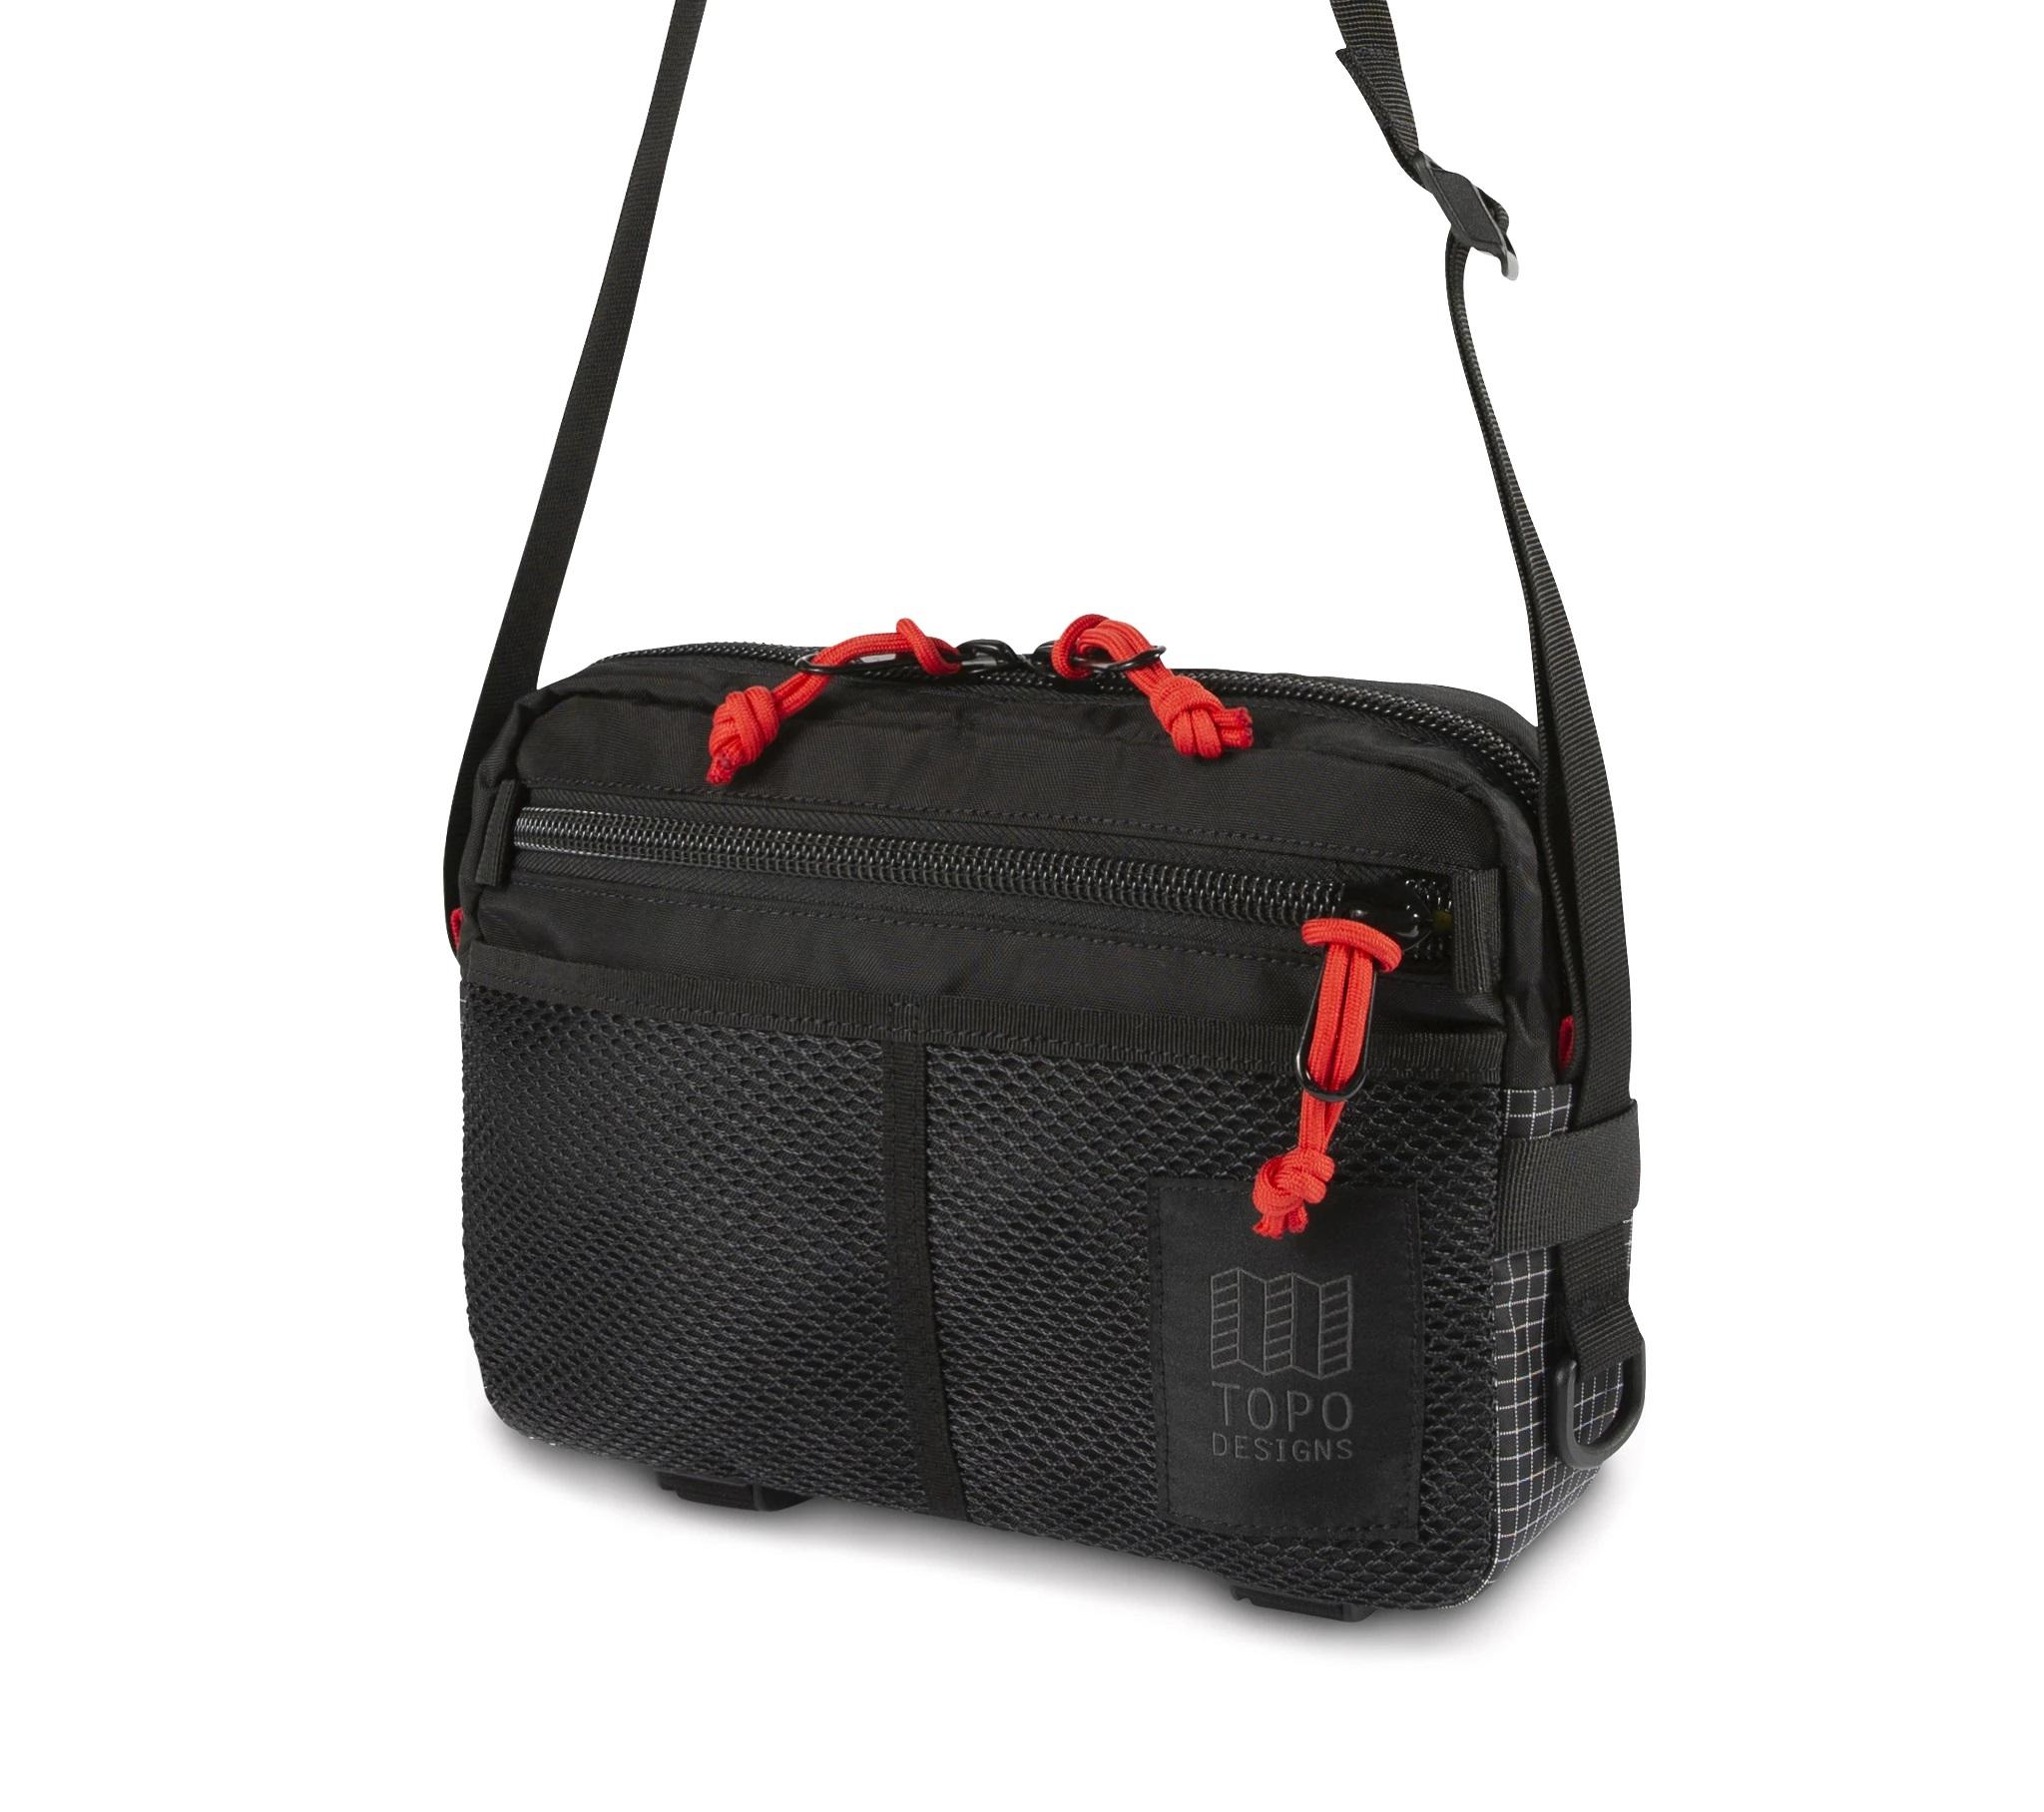 TOPO DESIGNS BLOCK BAG (Black)